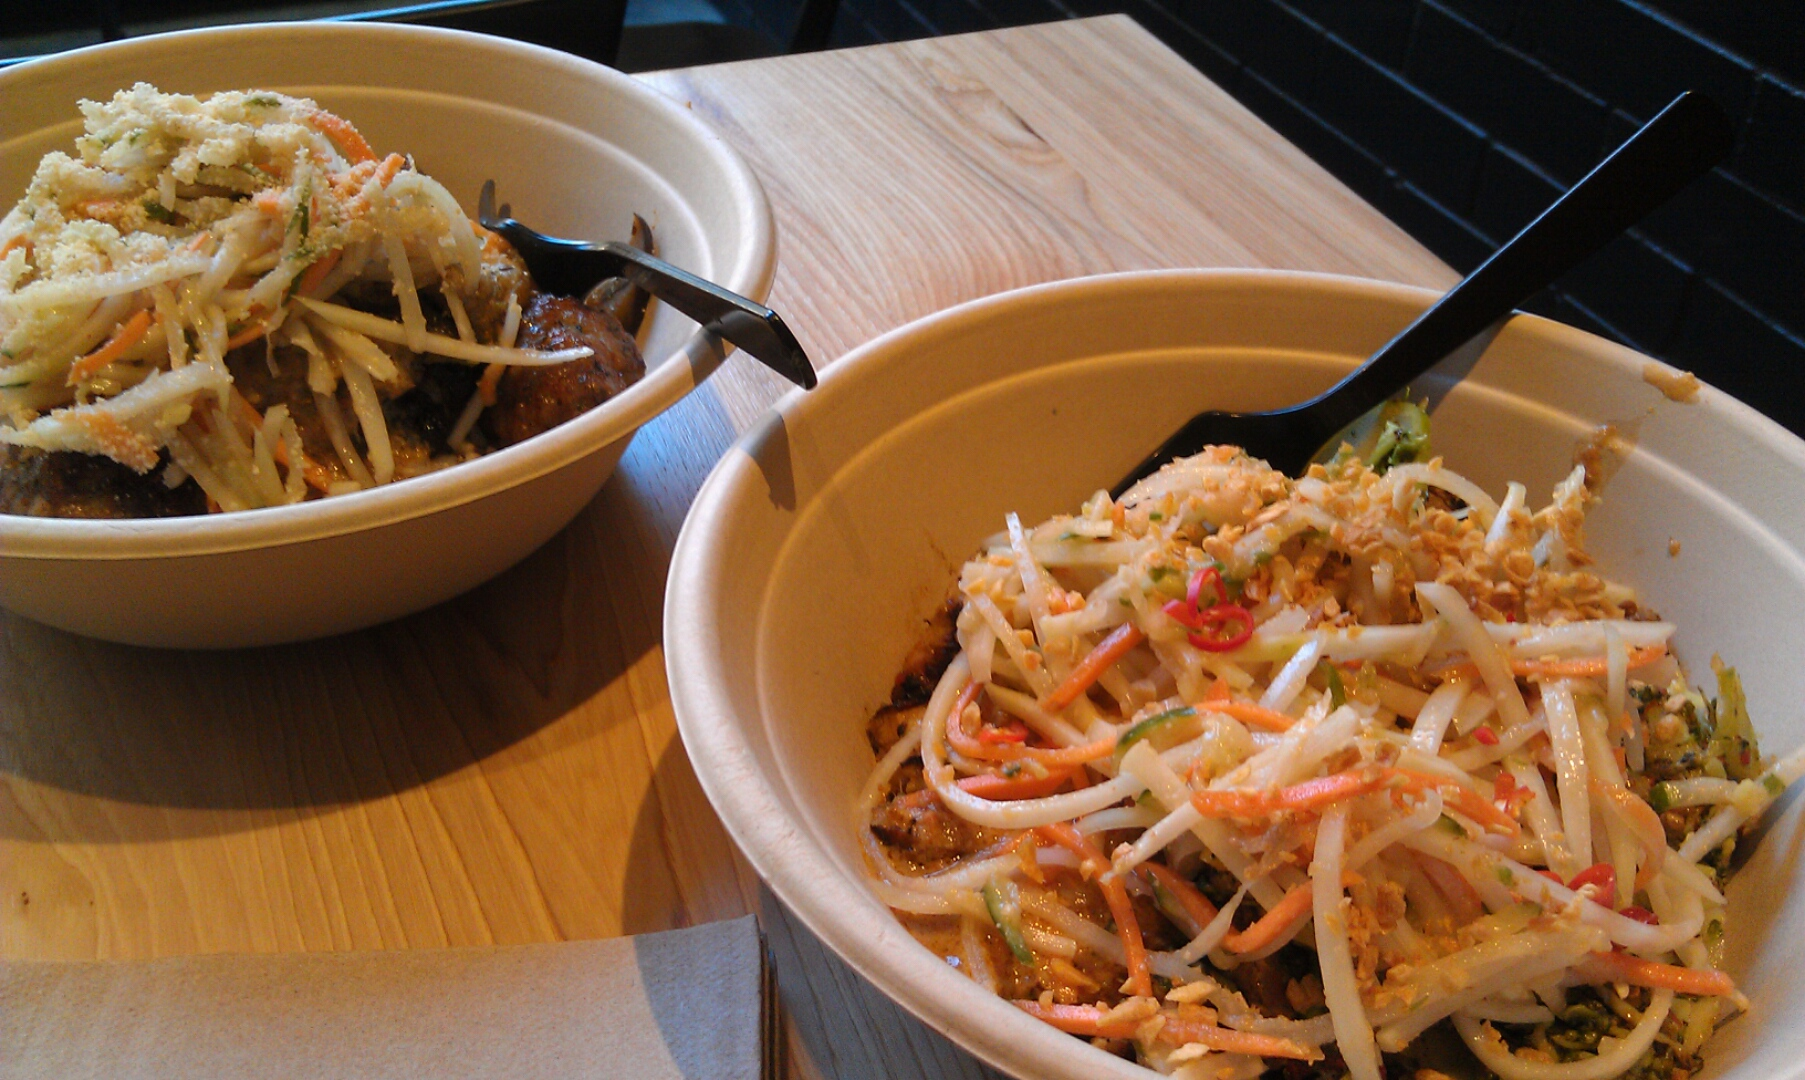 3 New Unique Quick-Casual Dining Spots to Try in Bethesda, MD